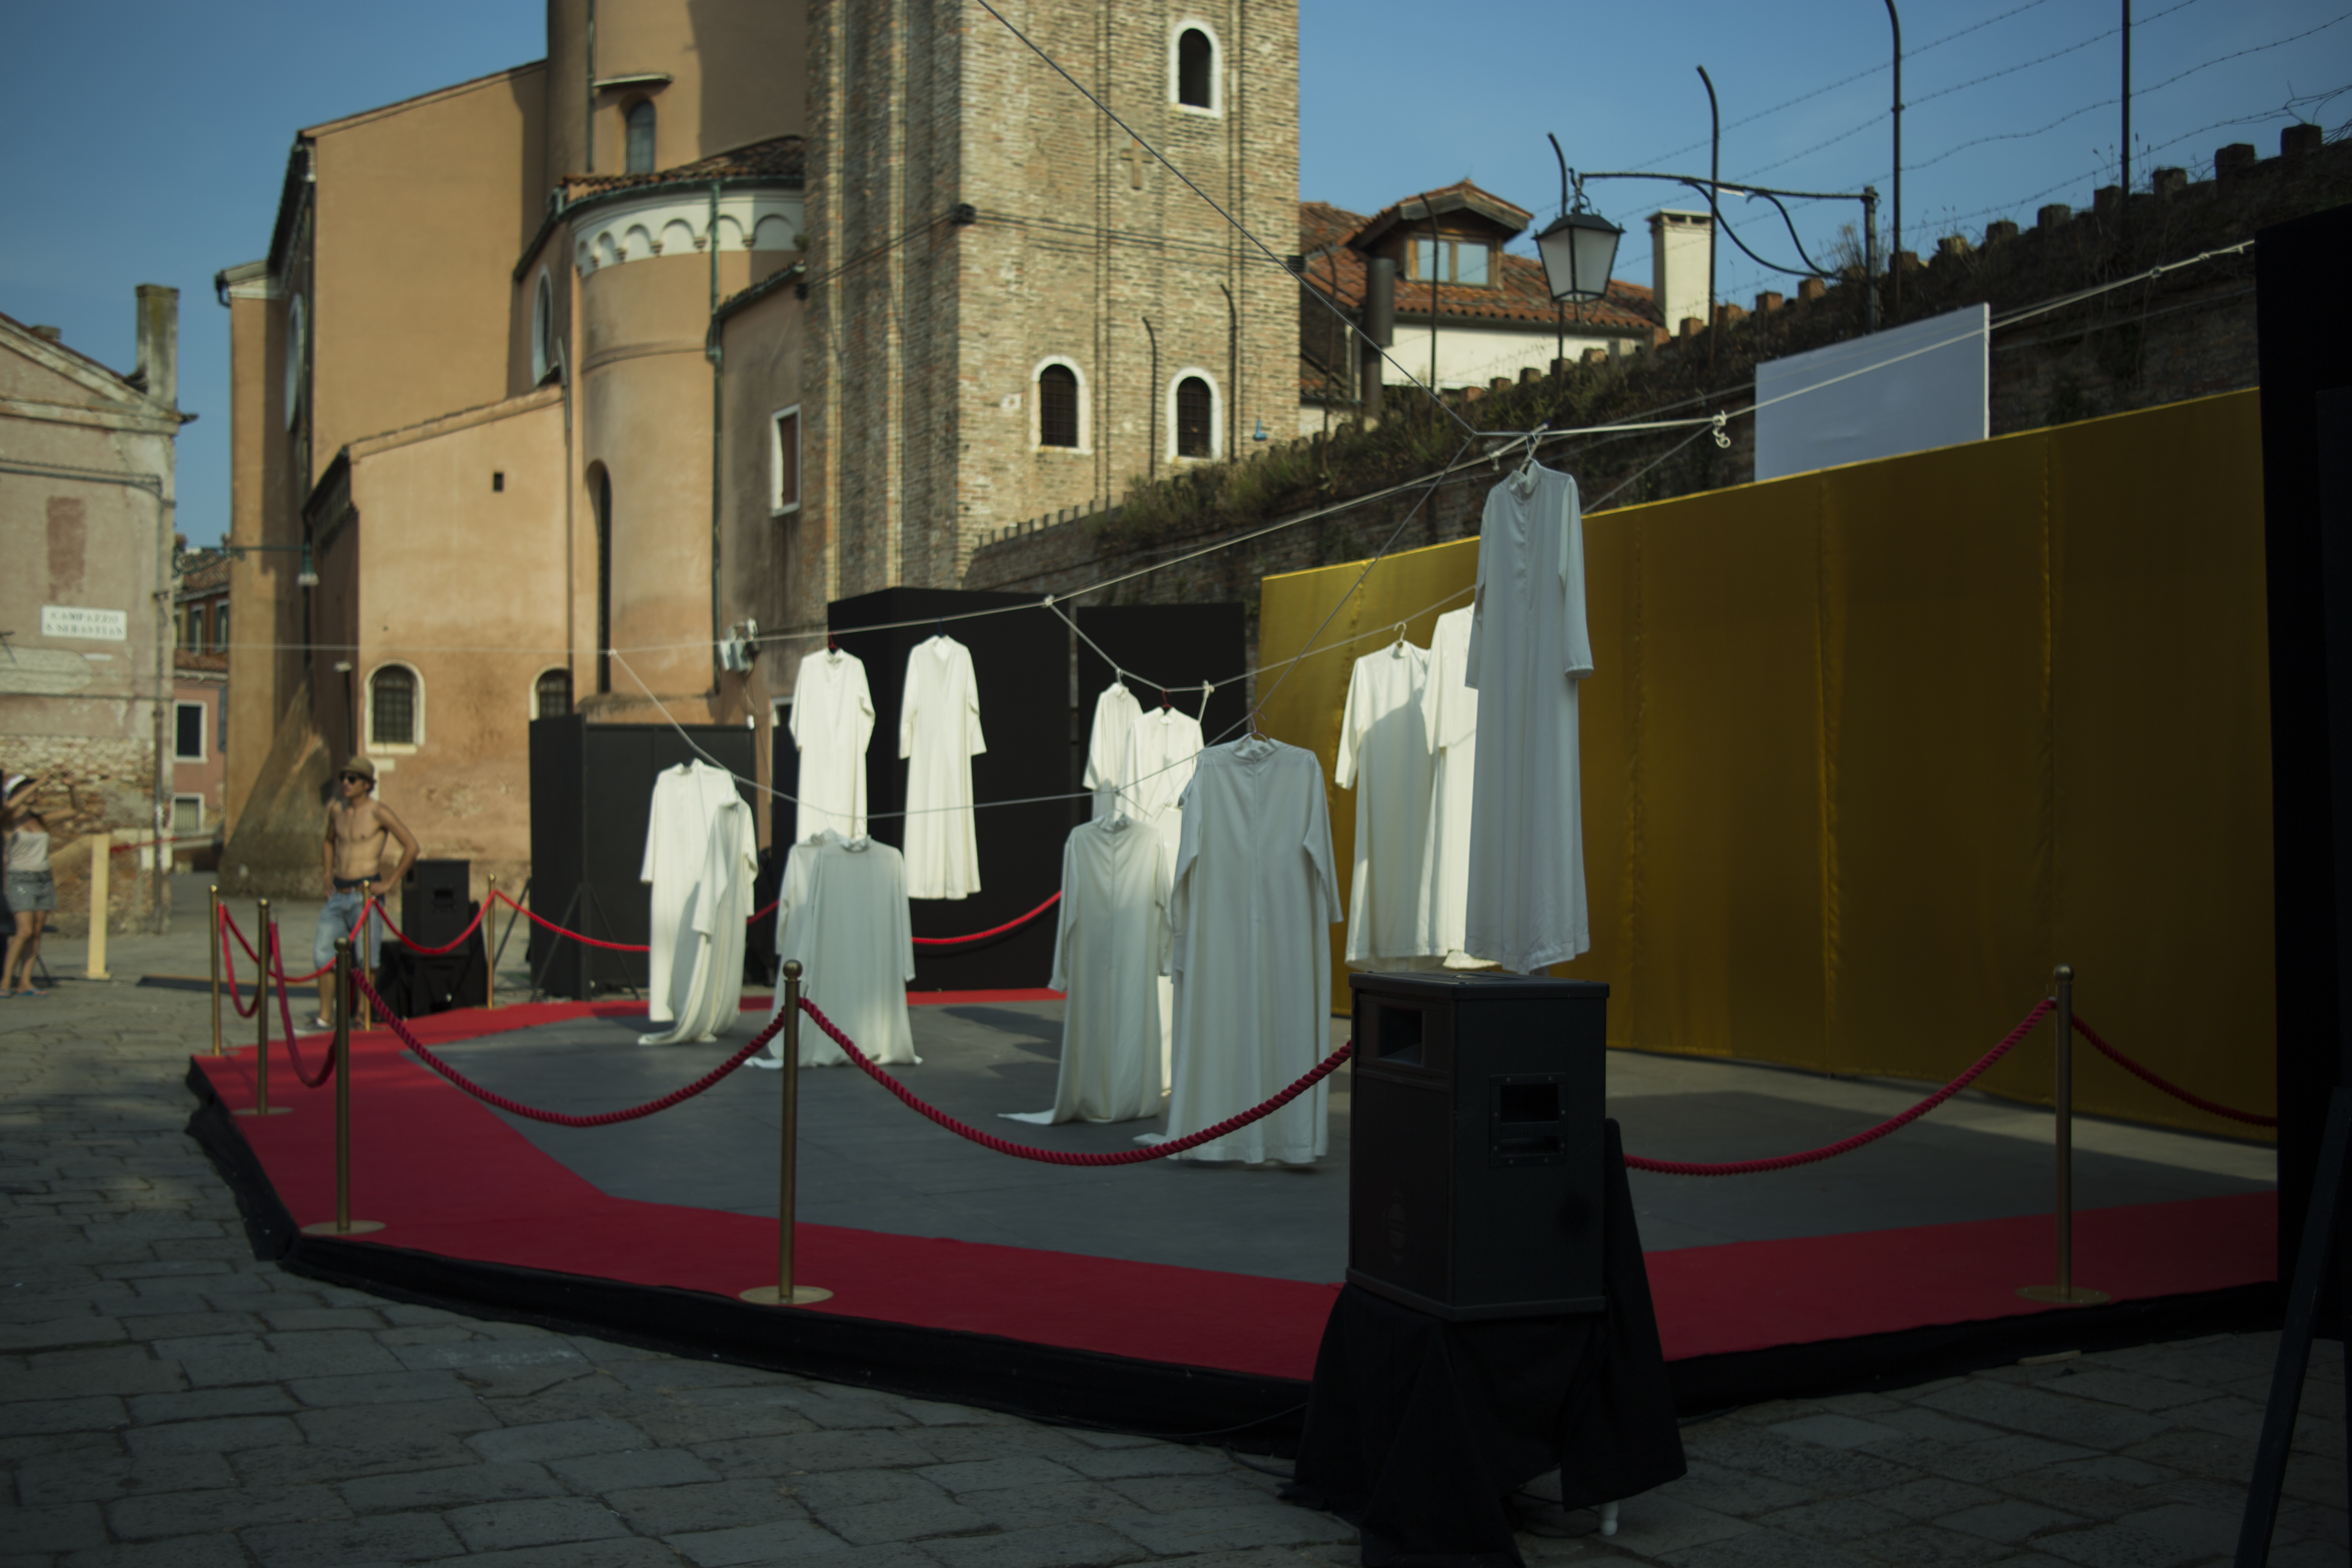 elle-genet-venice-open-stage-repetition.jpg